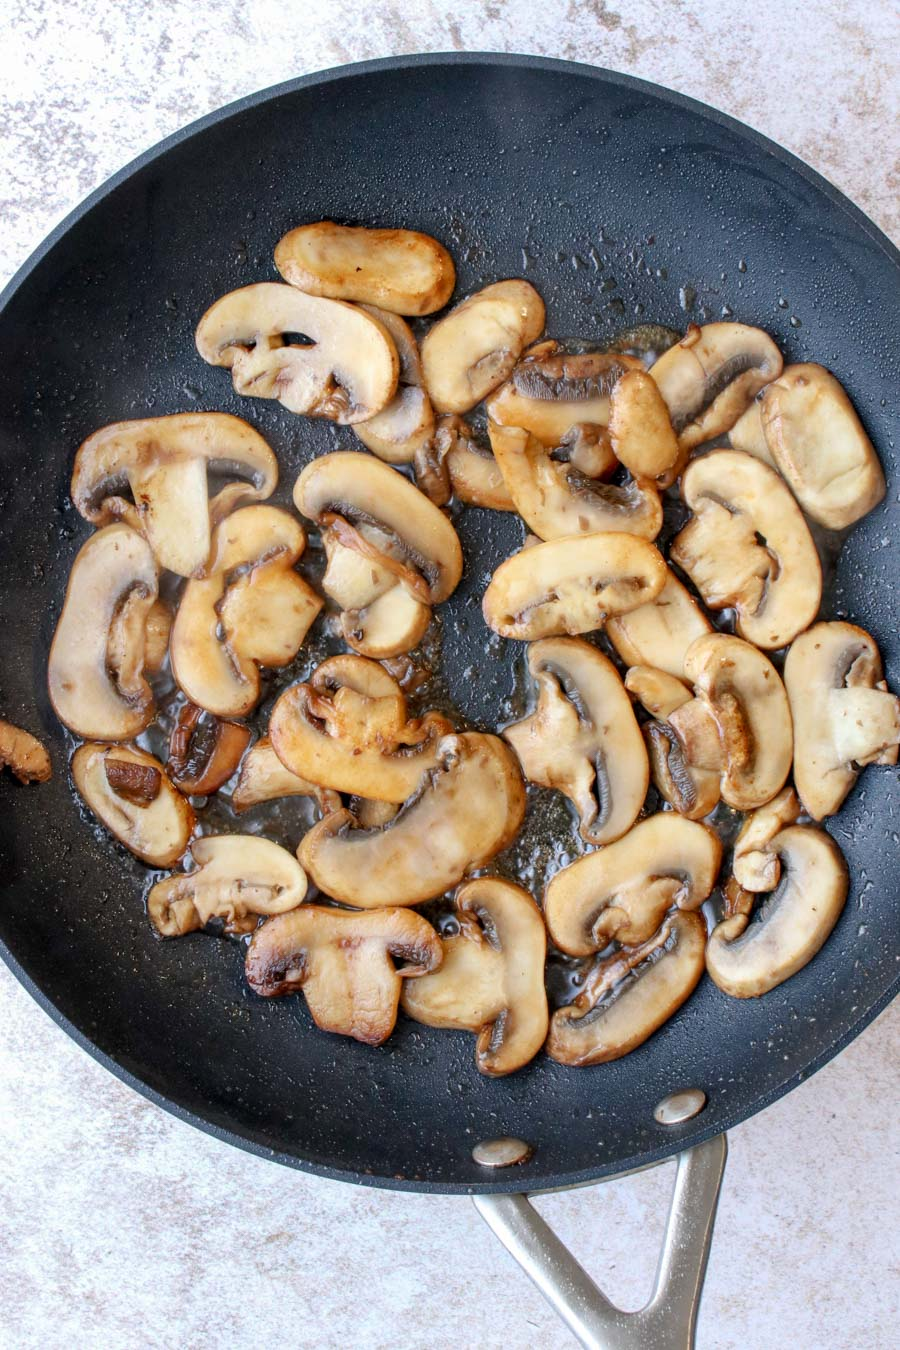 mushrooms cooking in a skillet